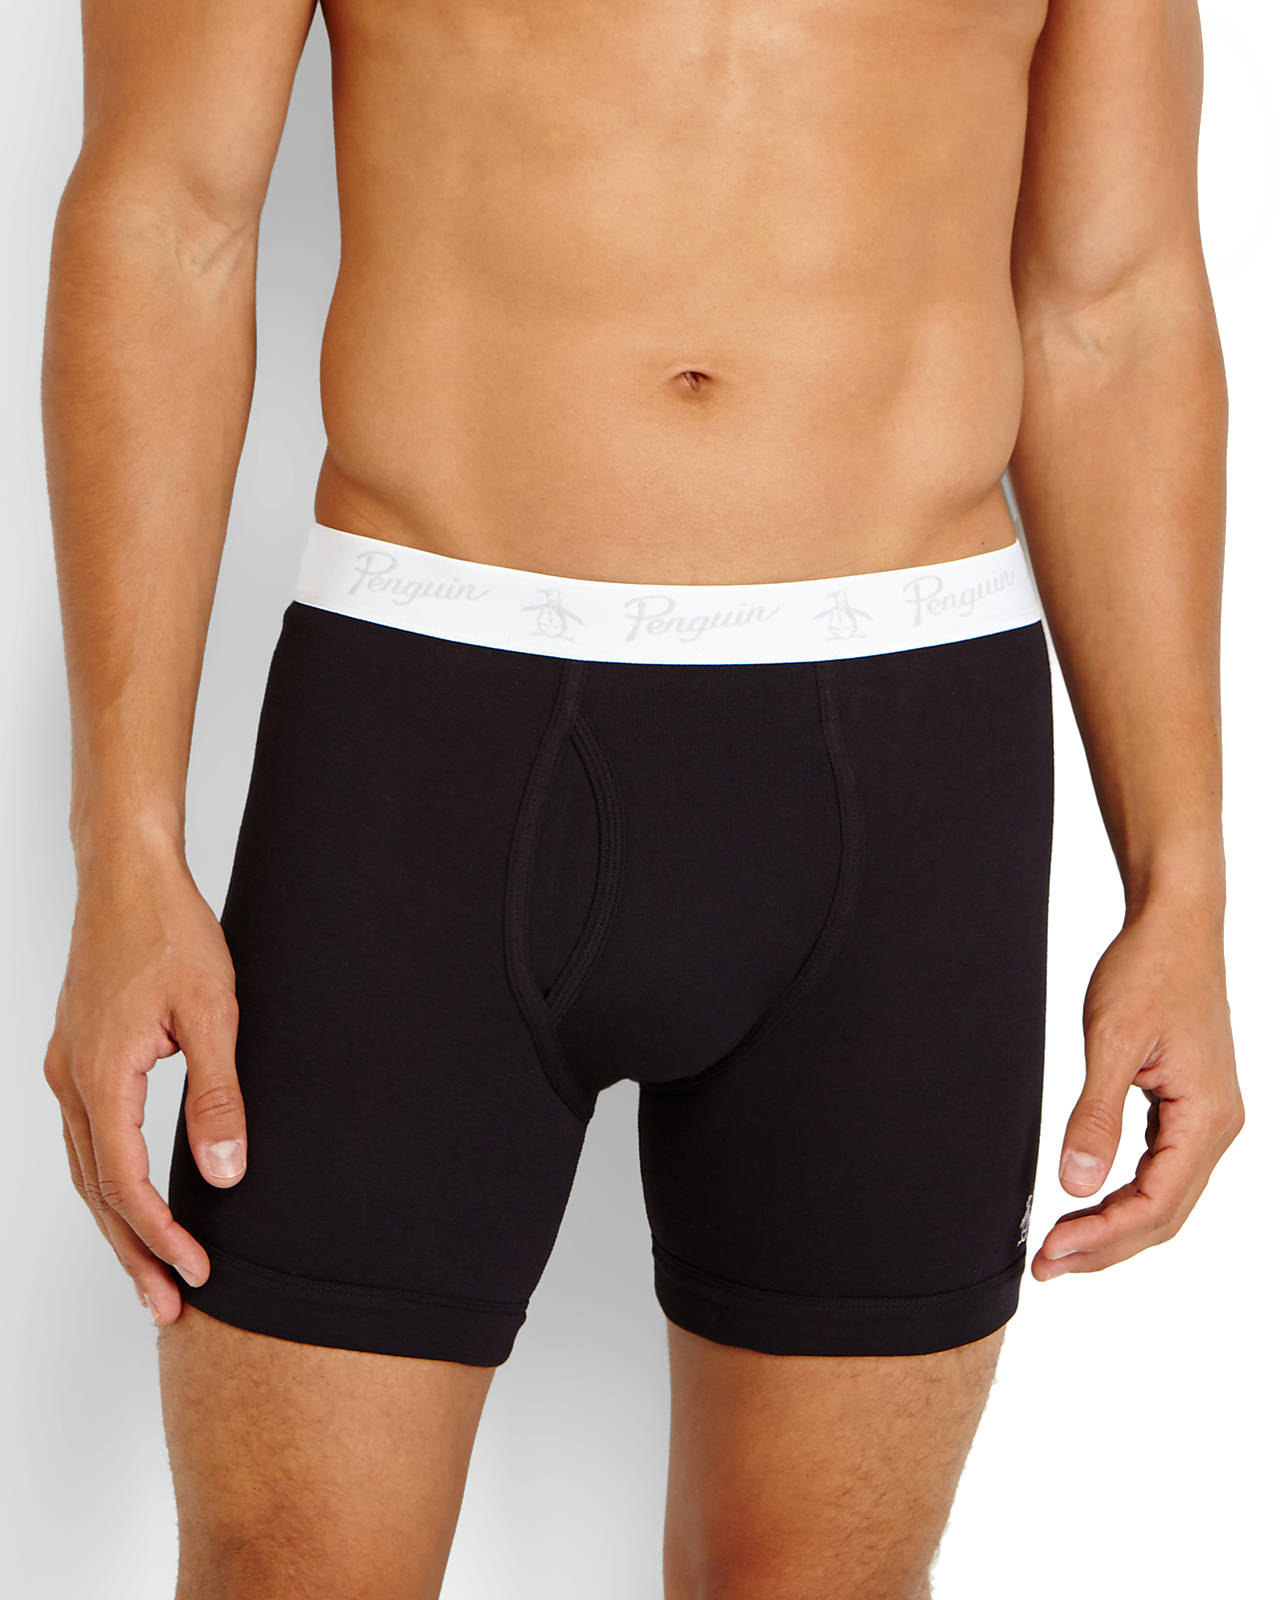 Mens Boxer Briefs Original Penguin Best Wholesale Cheap Online Fake Online Cheap Huge Surprise Outlet Cheap Price Outlet Newest C4fdrHW